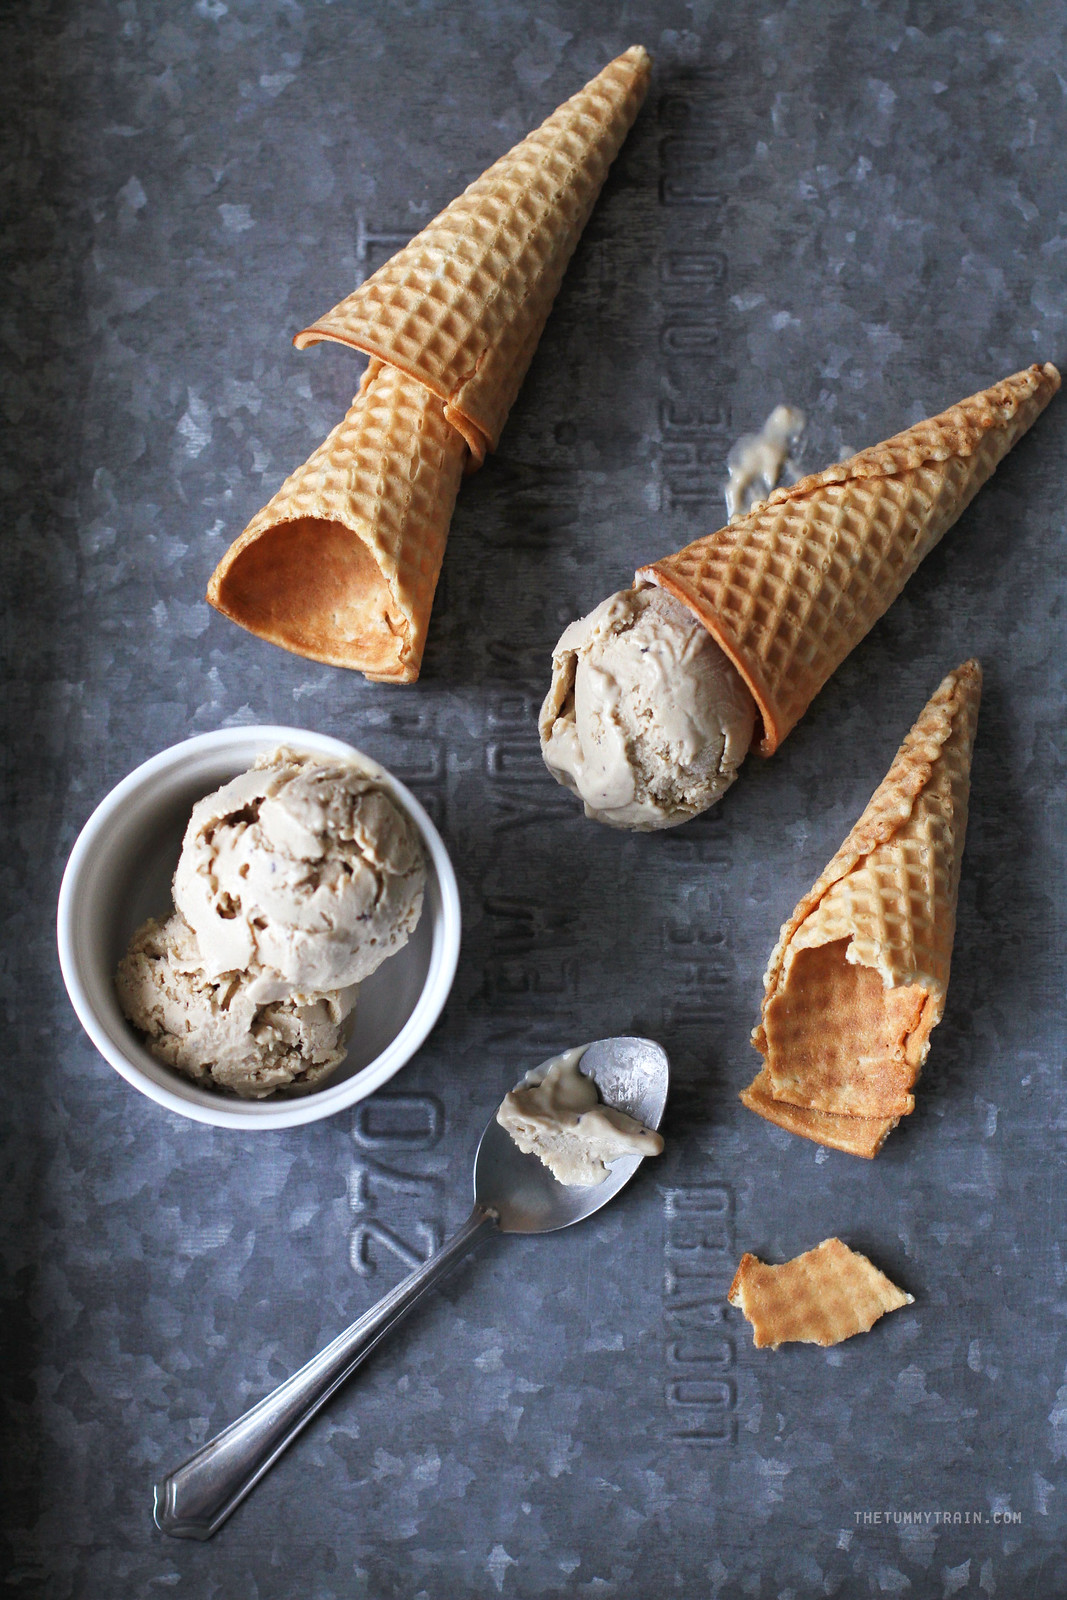 26114749835 7cc0bdc852 h - When the situation calls for an Earl Grey Ice Cream Recipe